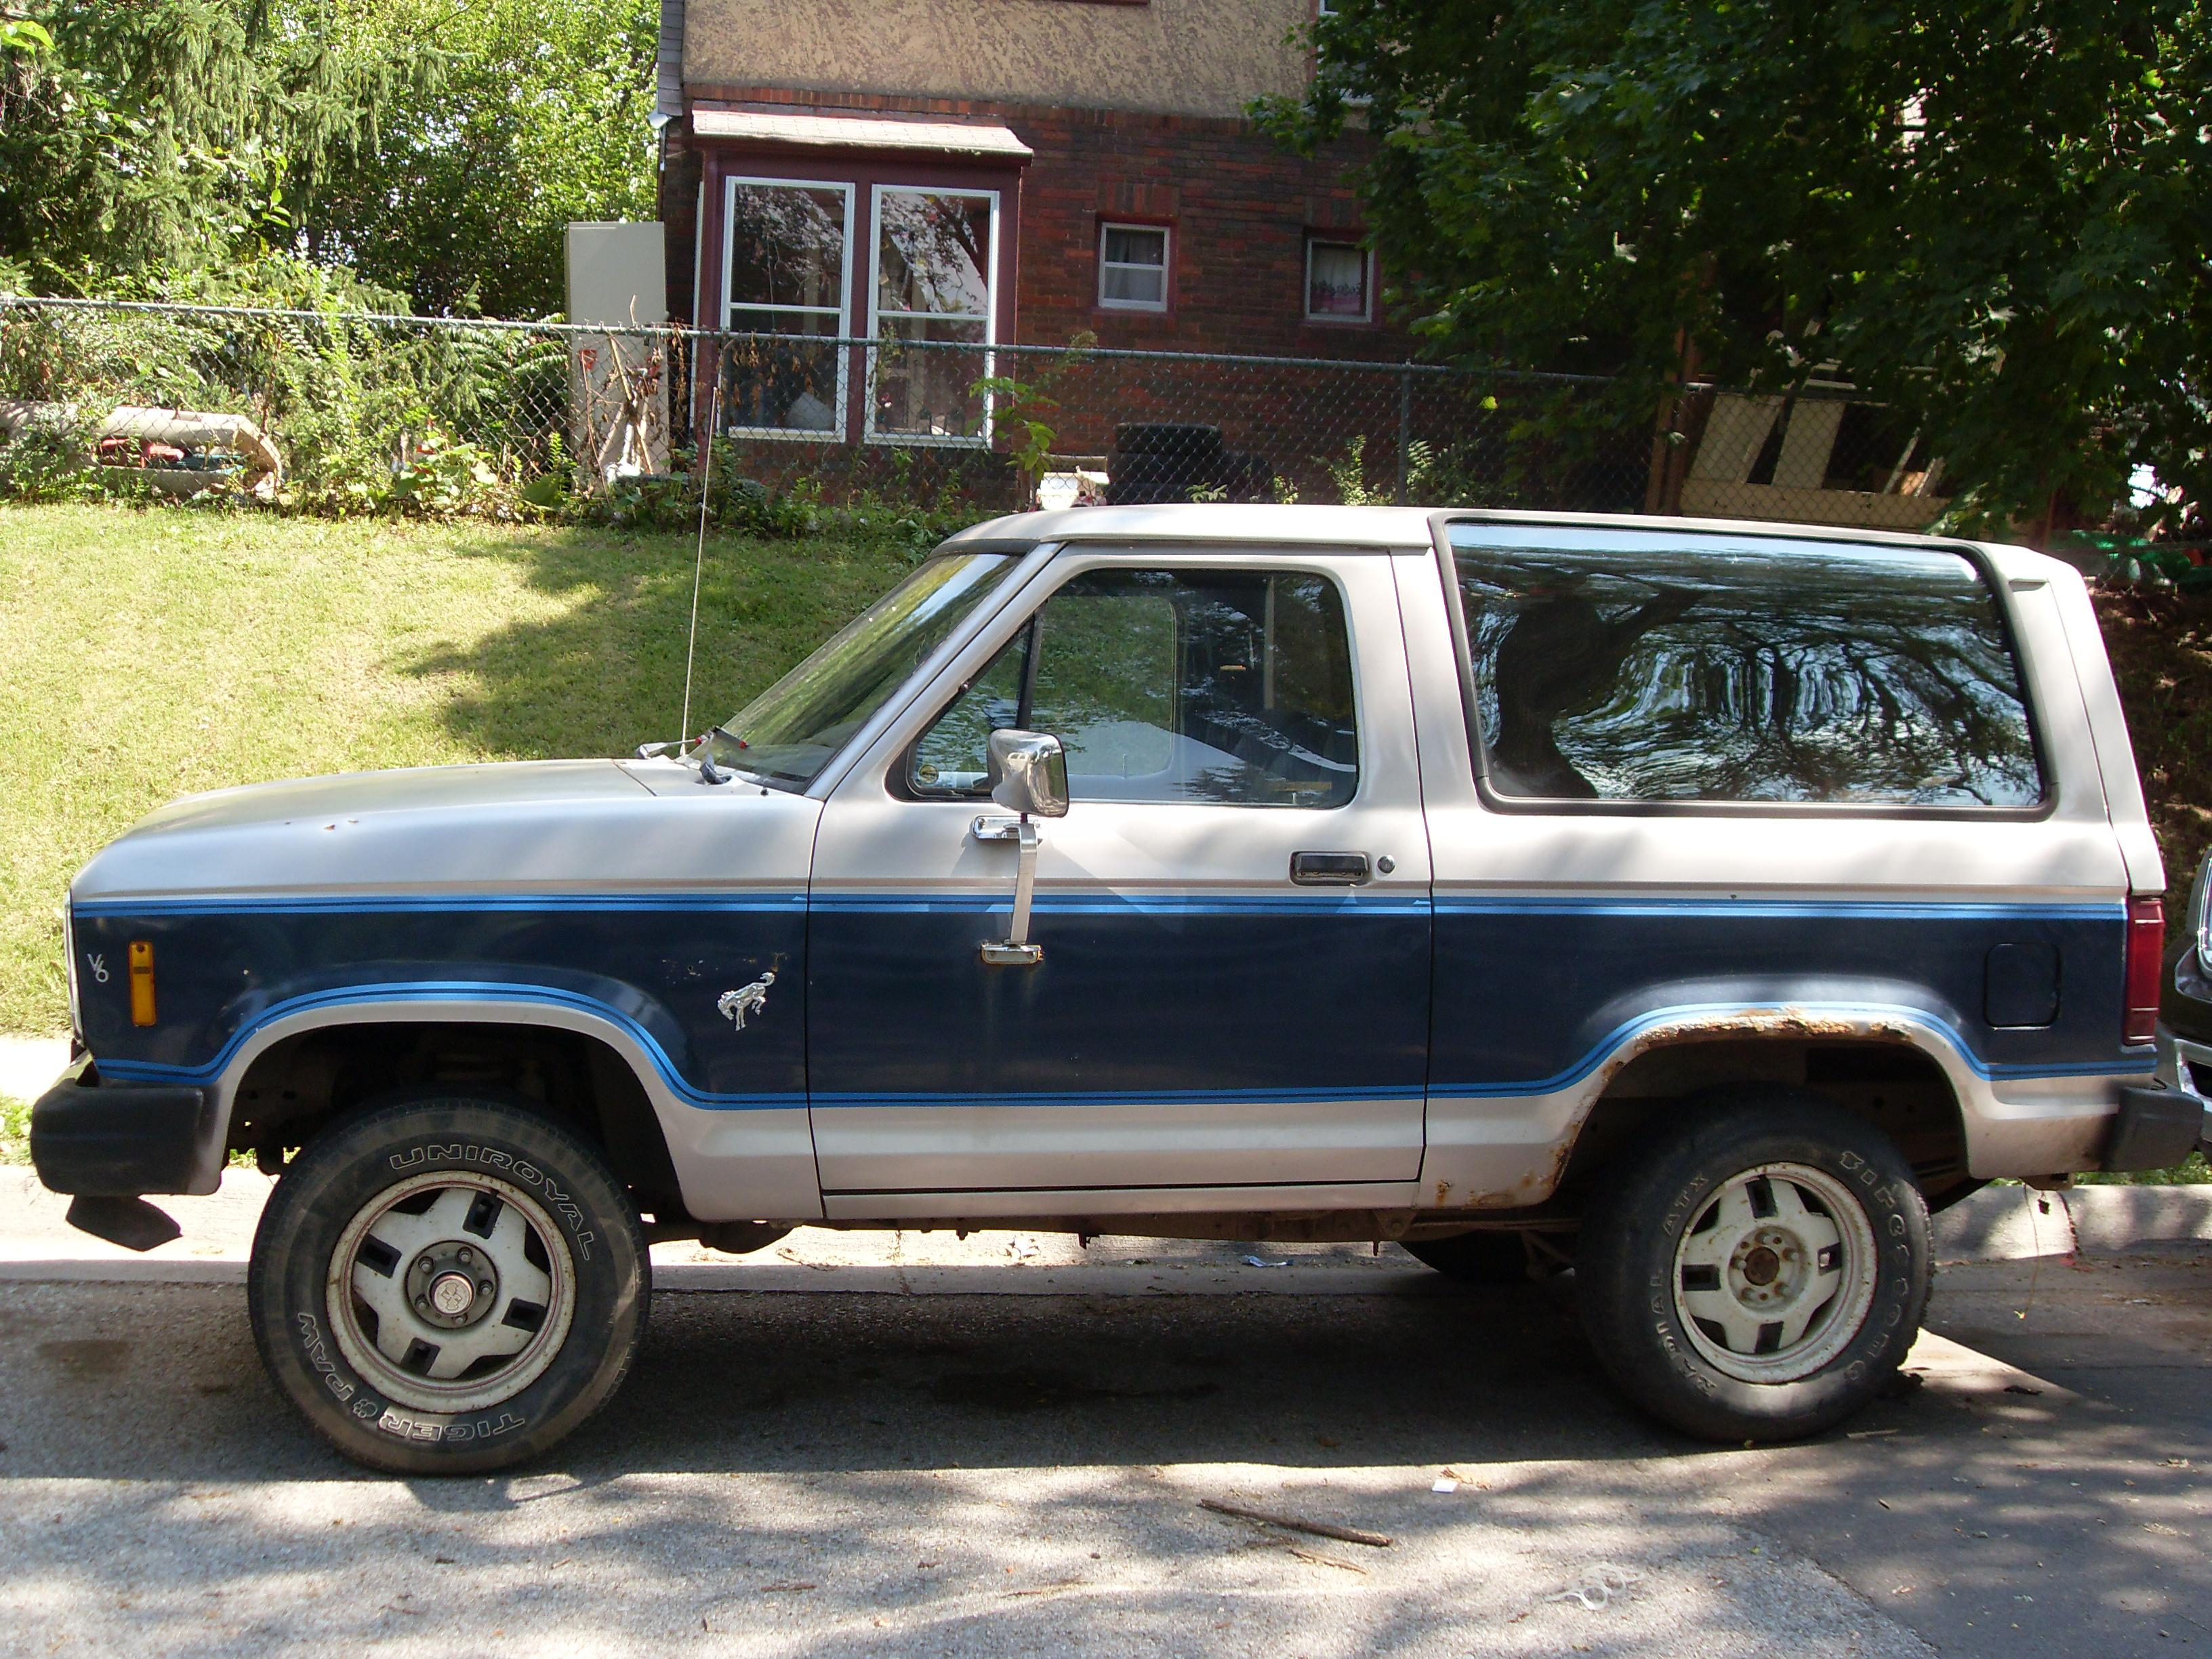 Mercedes Of Omaha >> Shapechanger 1985 Ford Bronco II Specs, Photos, Modification Info at CarDomain